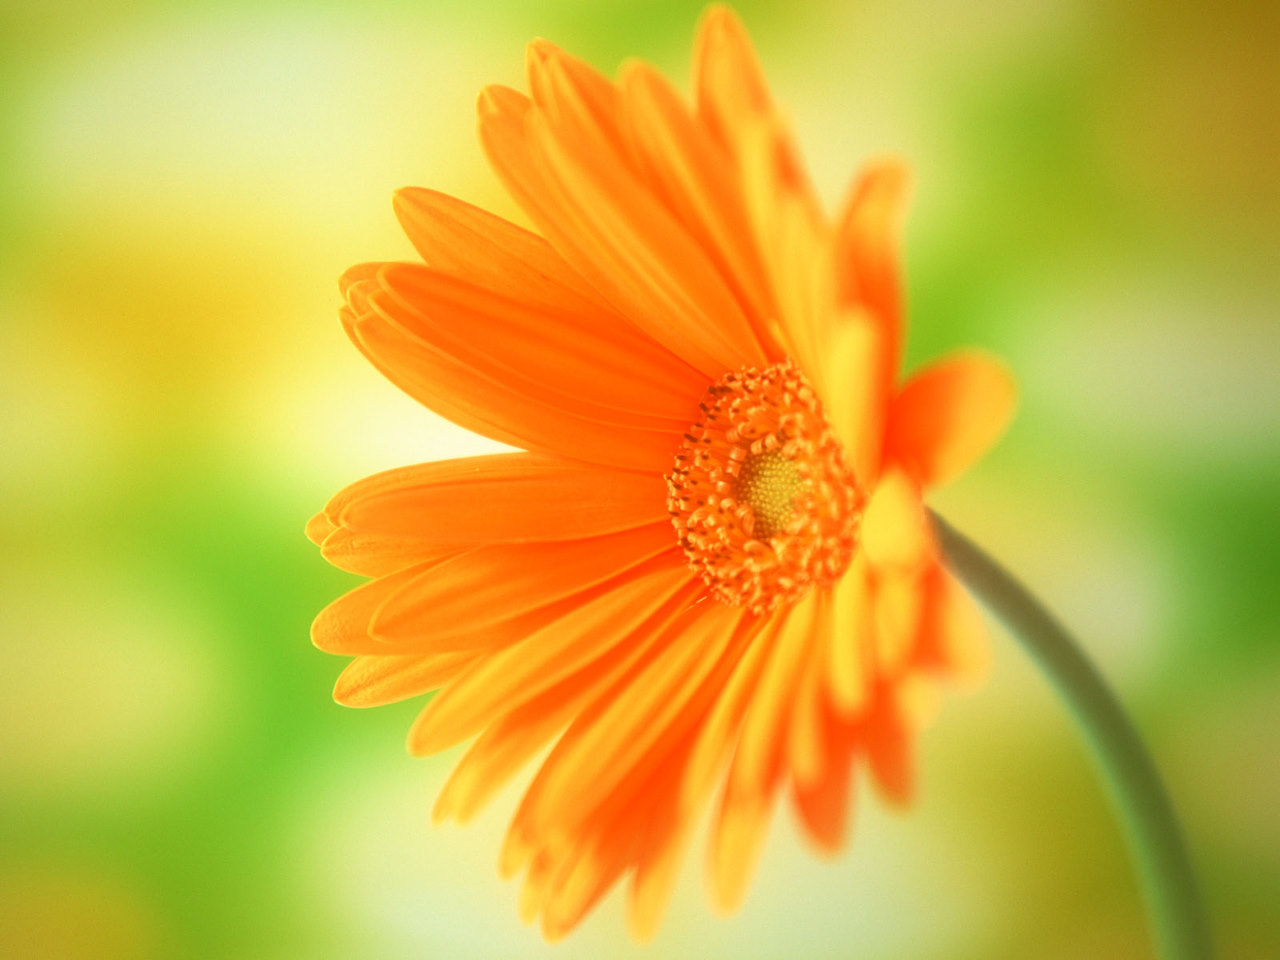 flowers for flower lovers Daisy flowers HD desktop wallpapers 1280x960